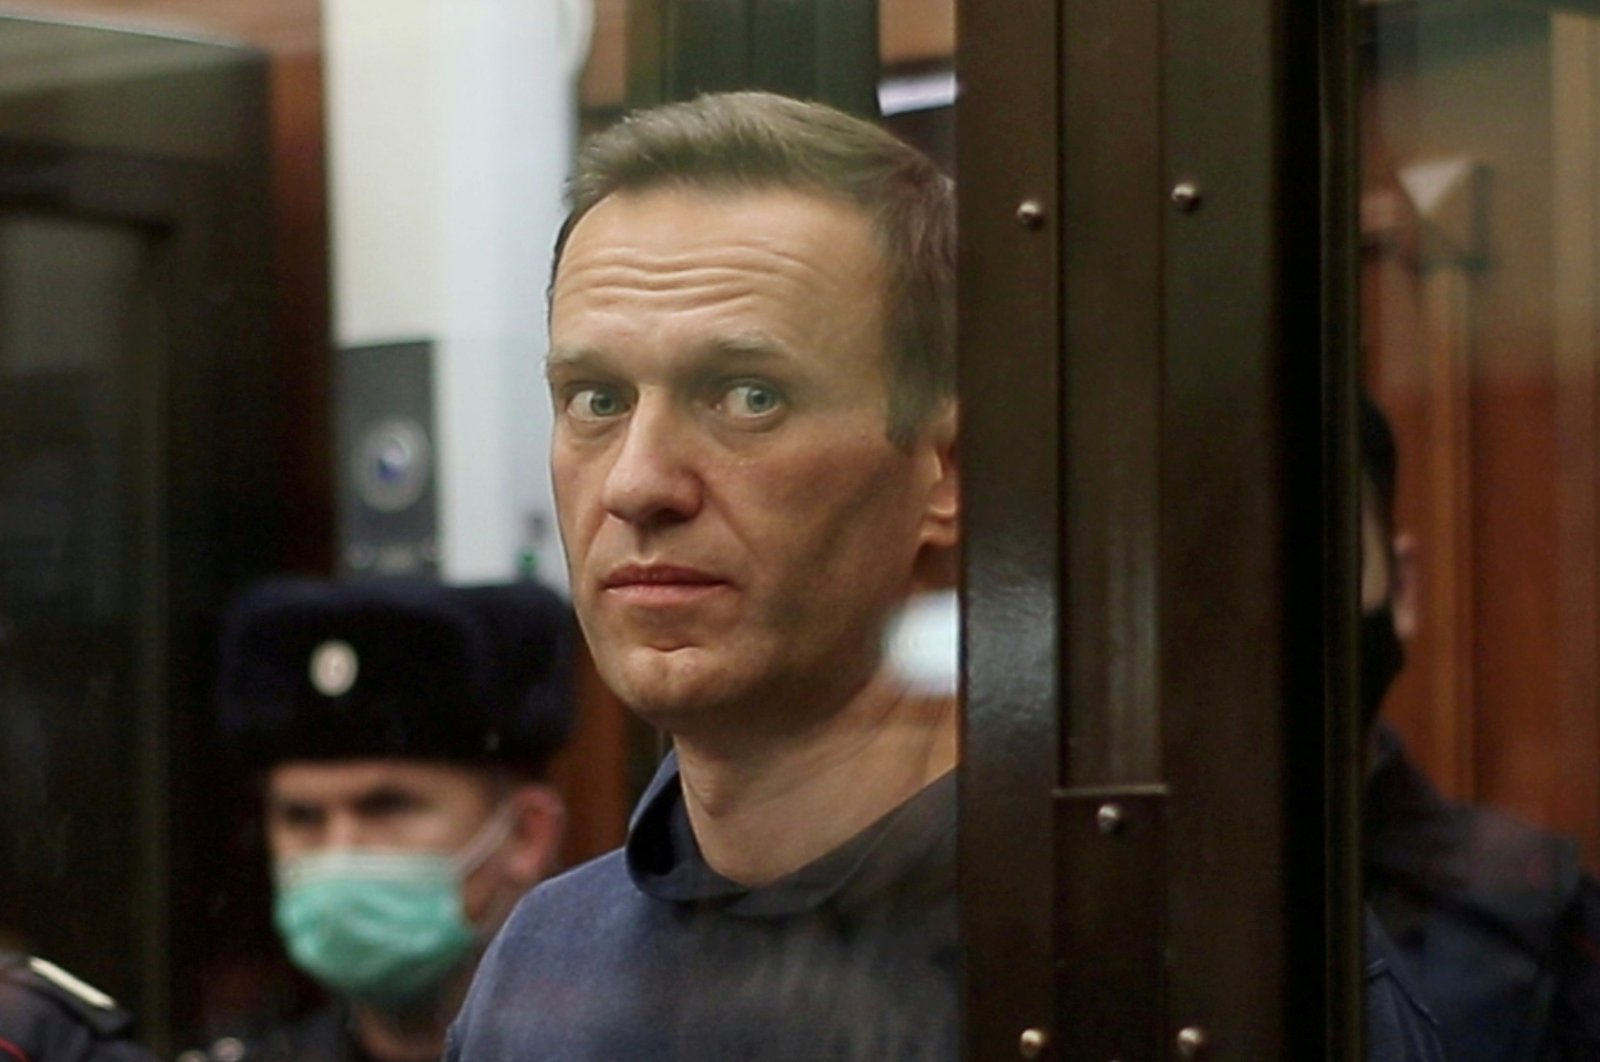 A still image taken from video footage shows Russian opposition leader Alexei Navalny, who is accused of flouting the terms of a suspended sentence for embezzlement, inside a defendant dock during the announcement of a court verdict in Moscow, Russia, Feb. 2, 2021. (Reuters Photo)